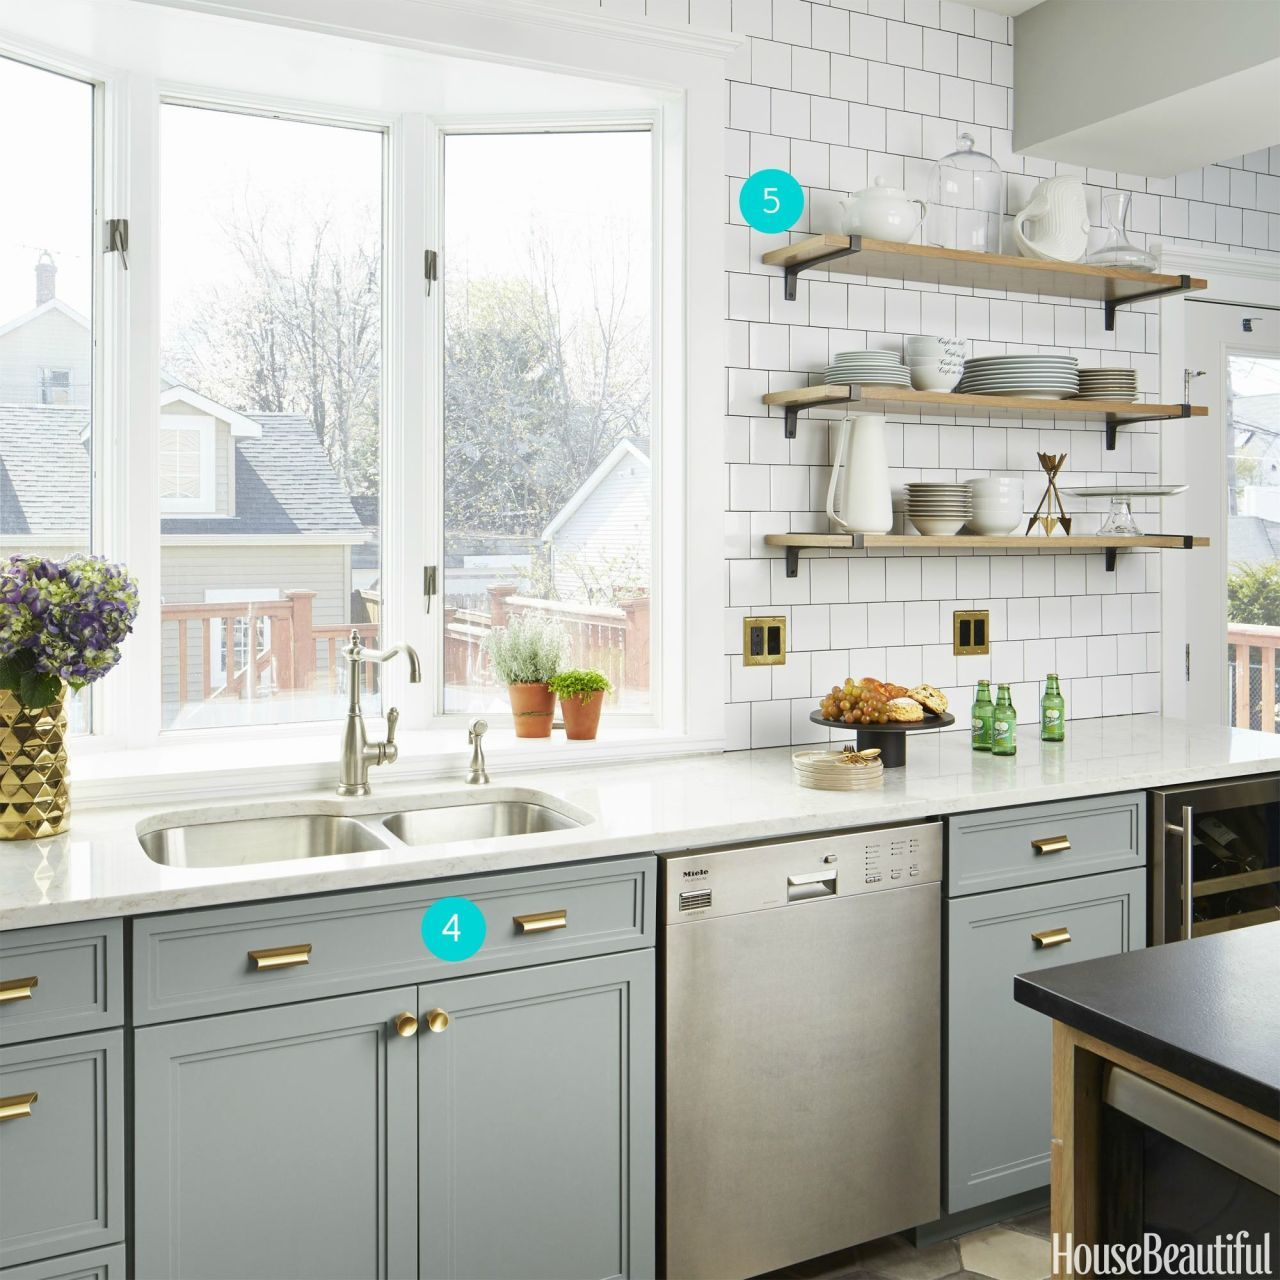 A Chicago Kitchen in a Muted Palette | Häuschen